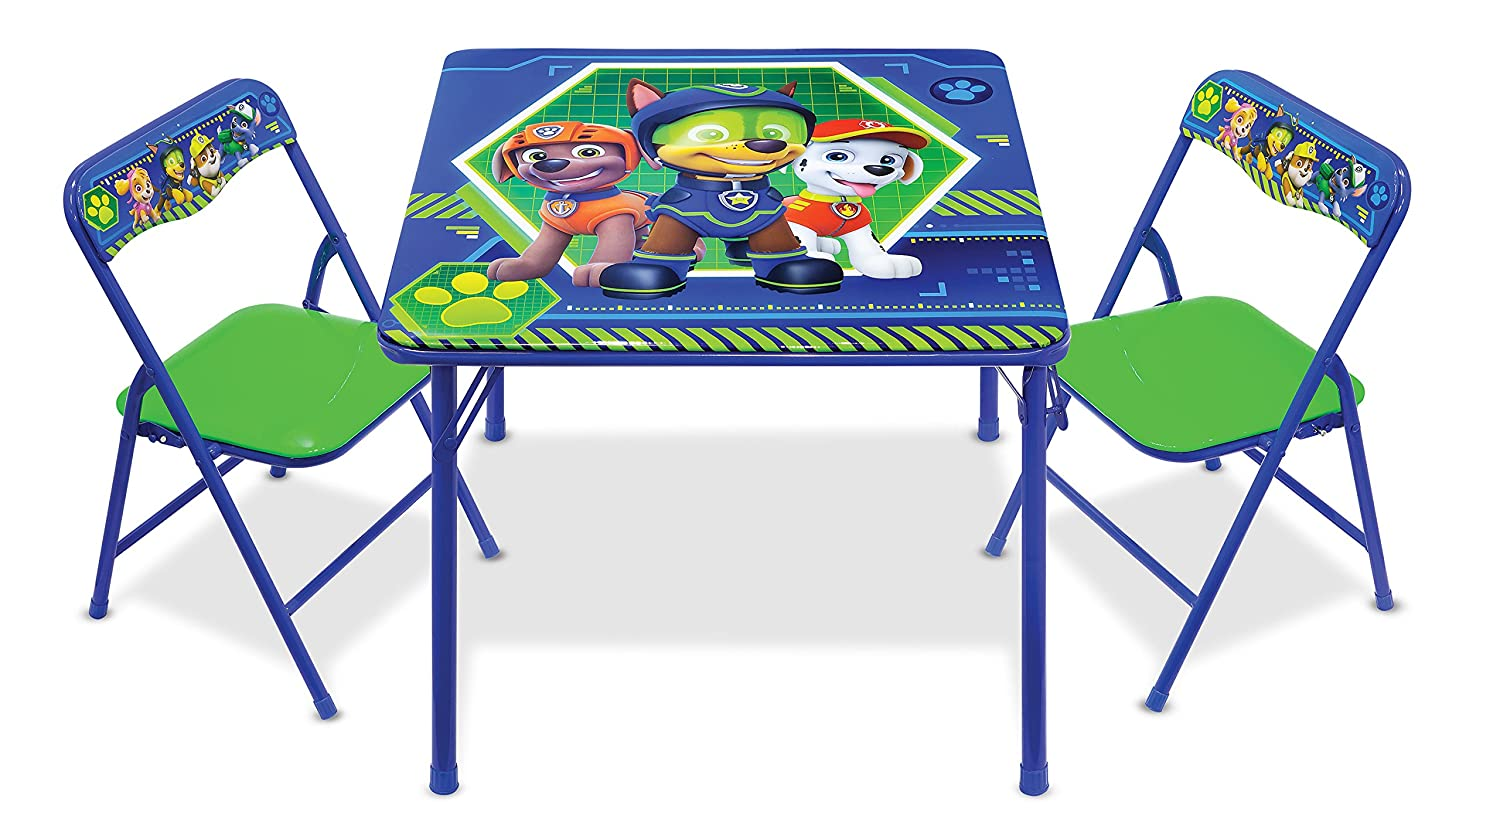 Nickelodeon Patrol Code Paw Activity Table Play Set with Two Chairs Moose Mountain - Domestic 63670